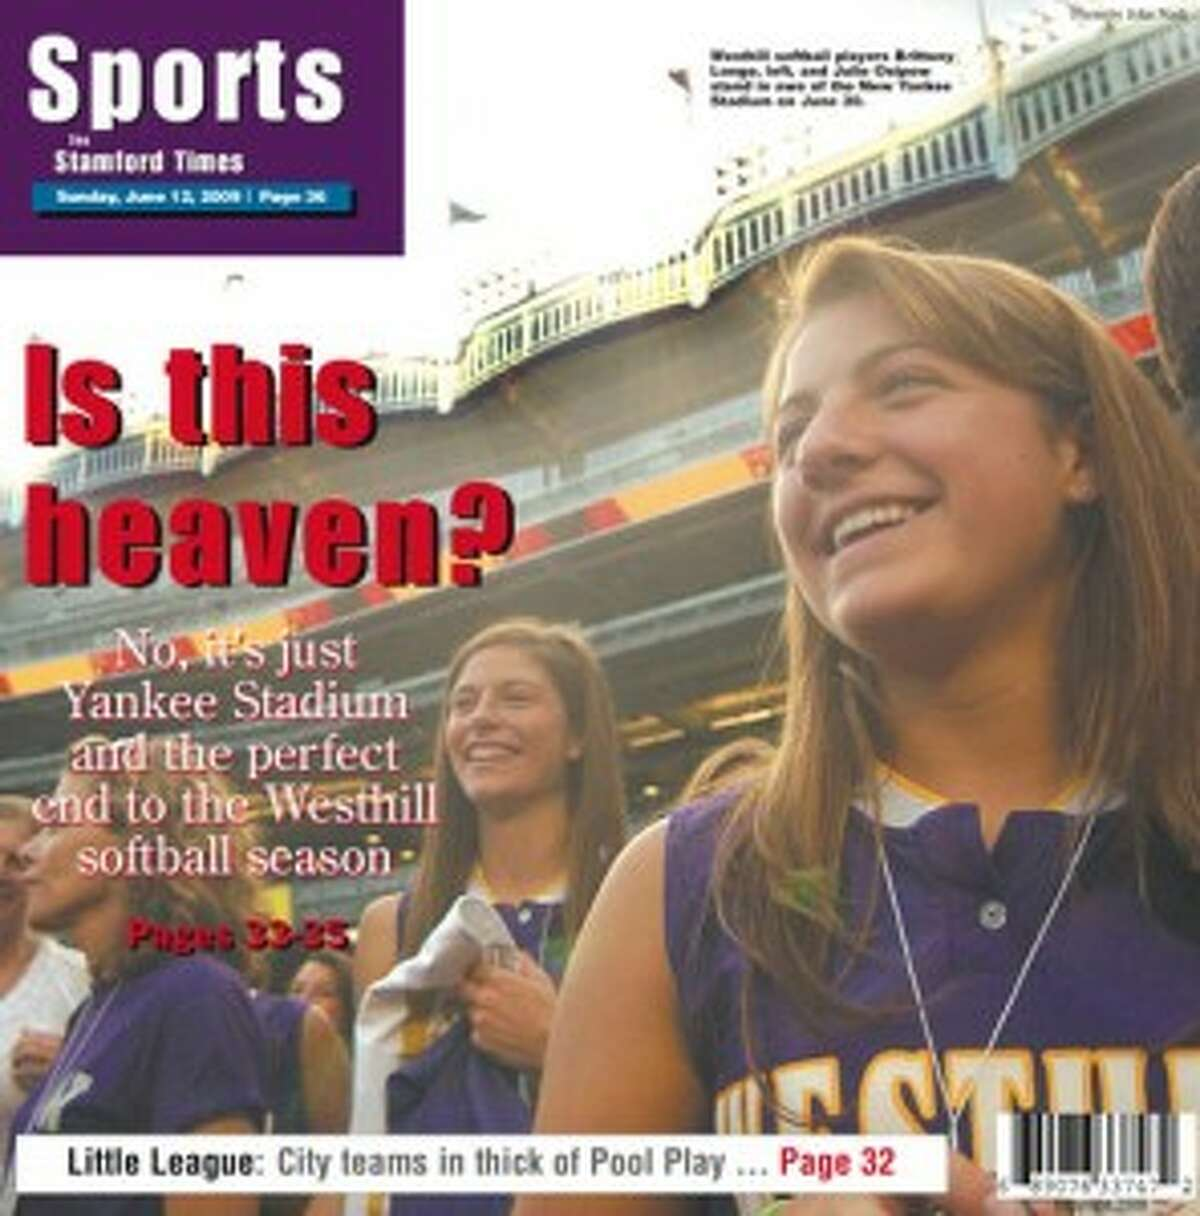 This Week In The Stamford Times (July 12, 2009 edition)